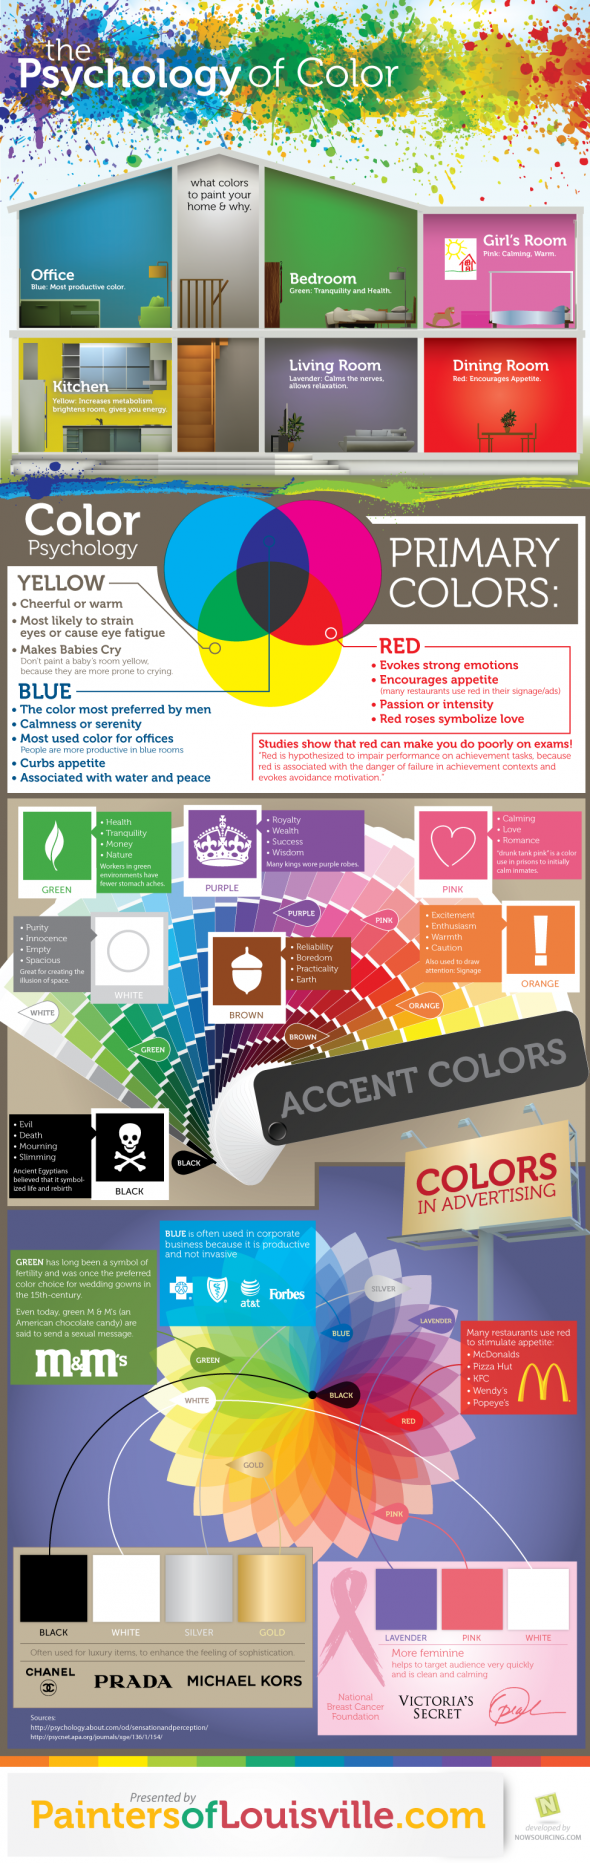 "The psychology of color is often overlooked as an influence in the decisions we make every day.  This post discusses three ways color psychology affects decisions."">"